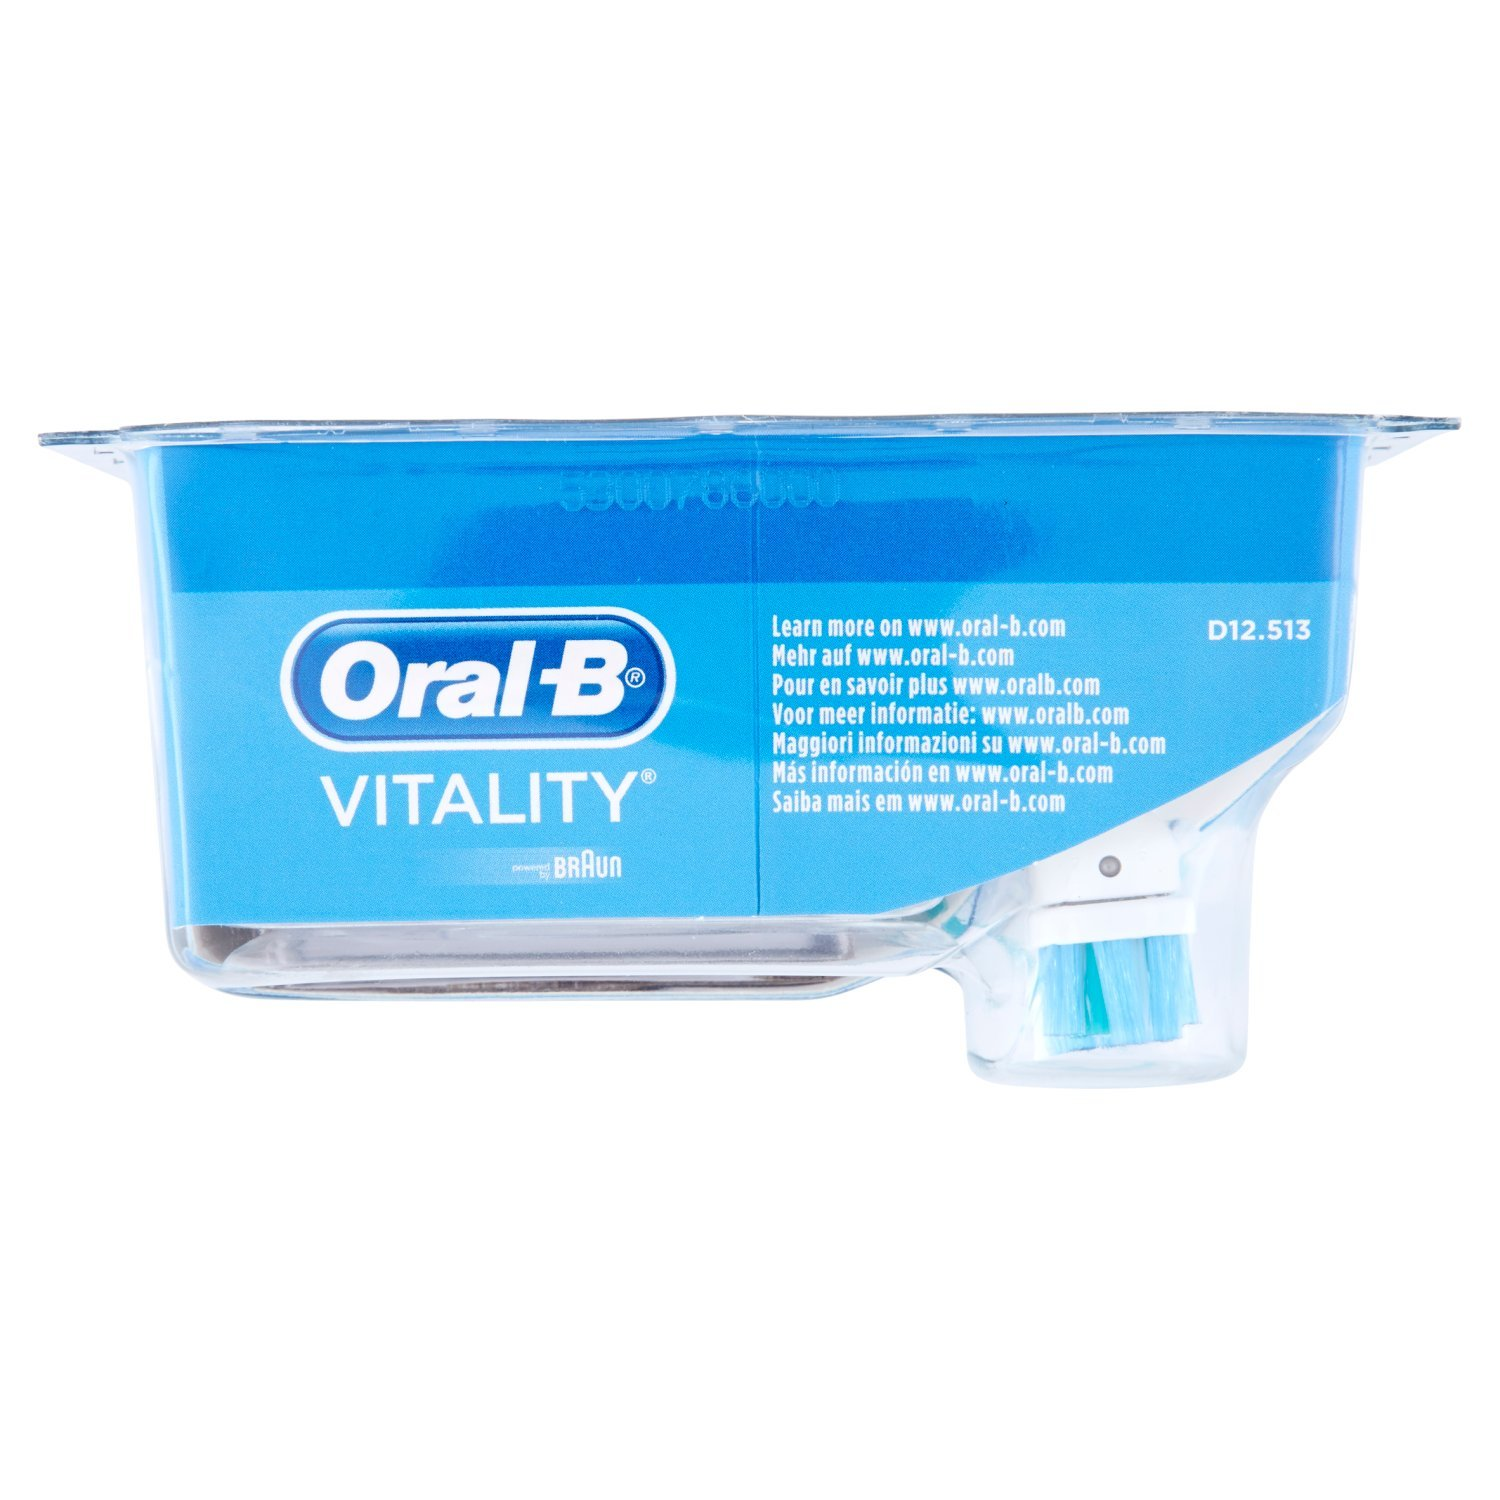 Amazon.com: Oral-B Vitality 2D Action Technology Electric ...